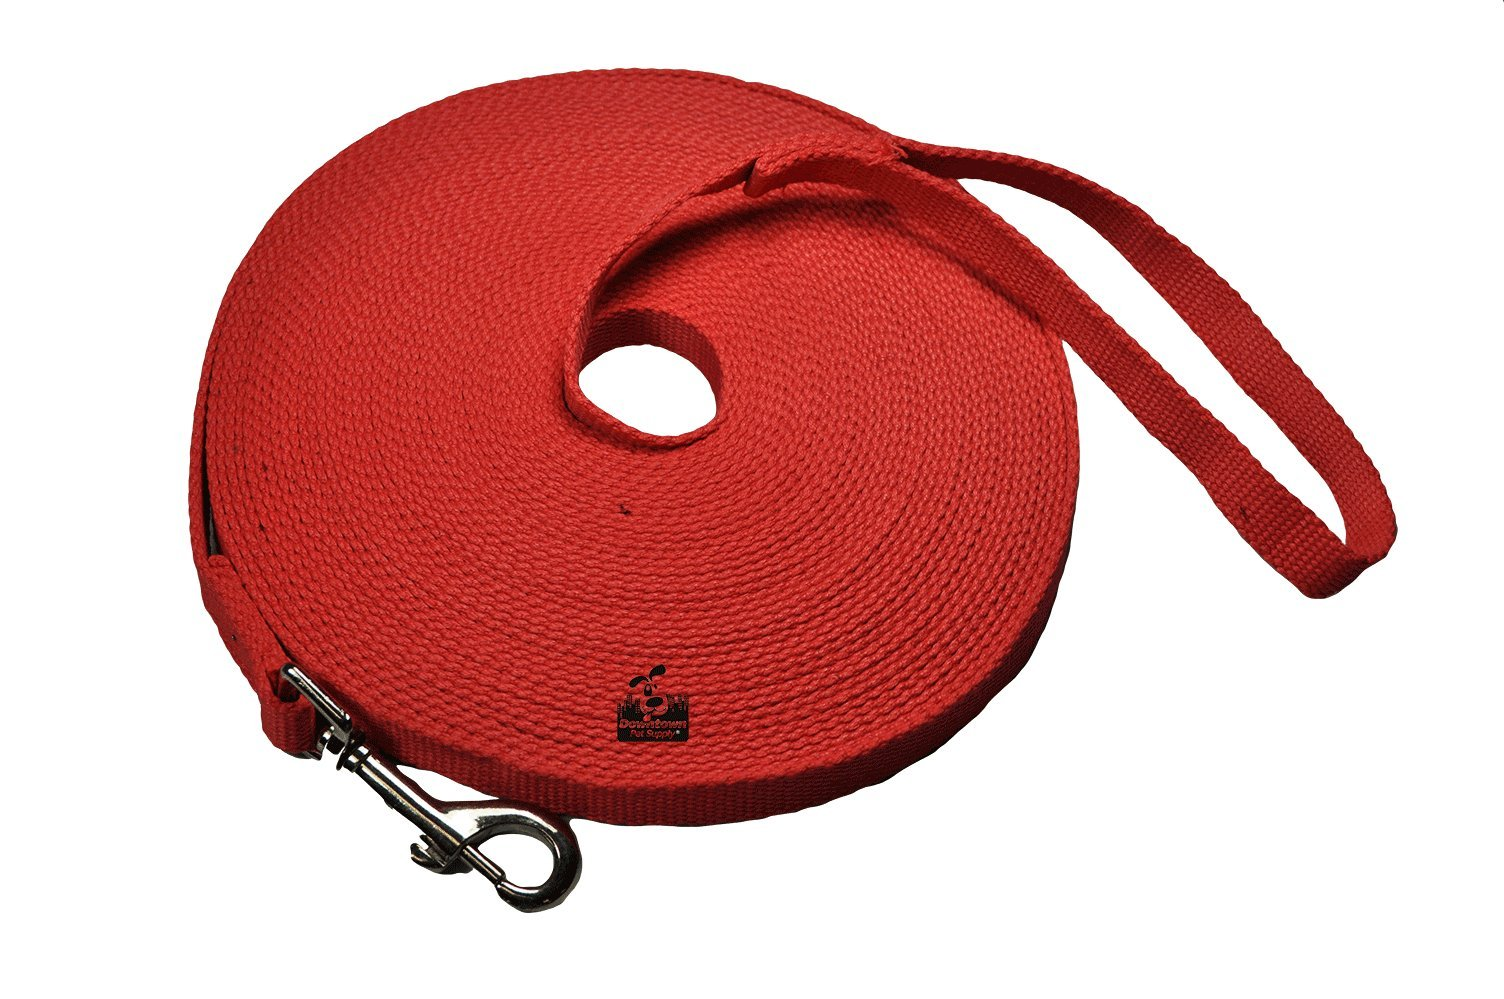 Downtown Pet Supply Long Dog Puppy Obedience Recall Training Agility Lead, Leash - RED, 50' Foot - by